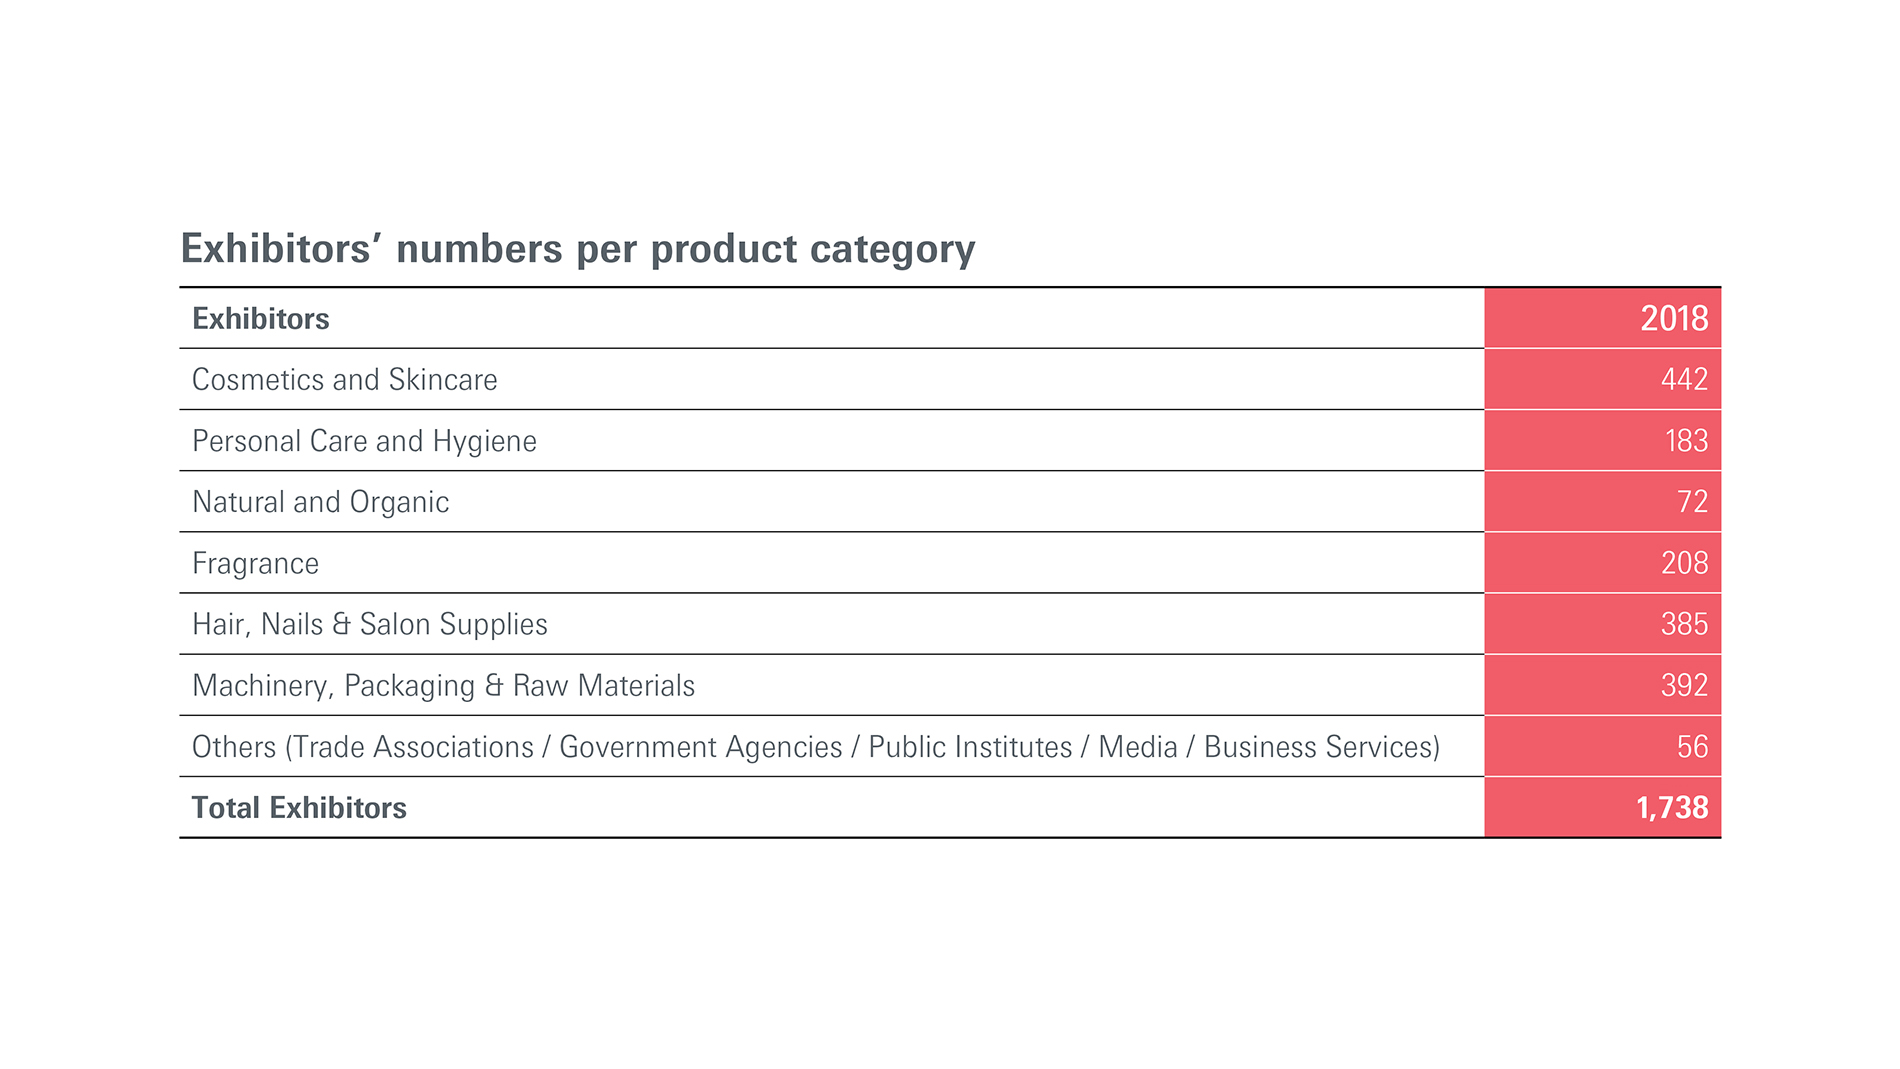 Exhibitors' numbers per product category